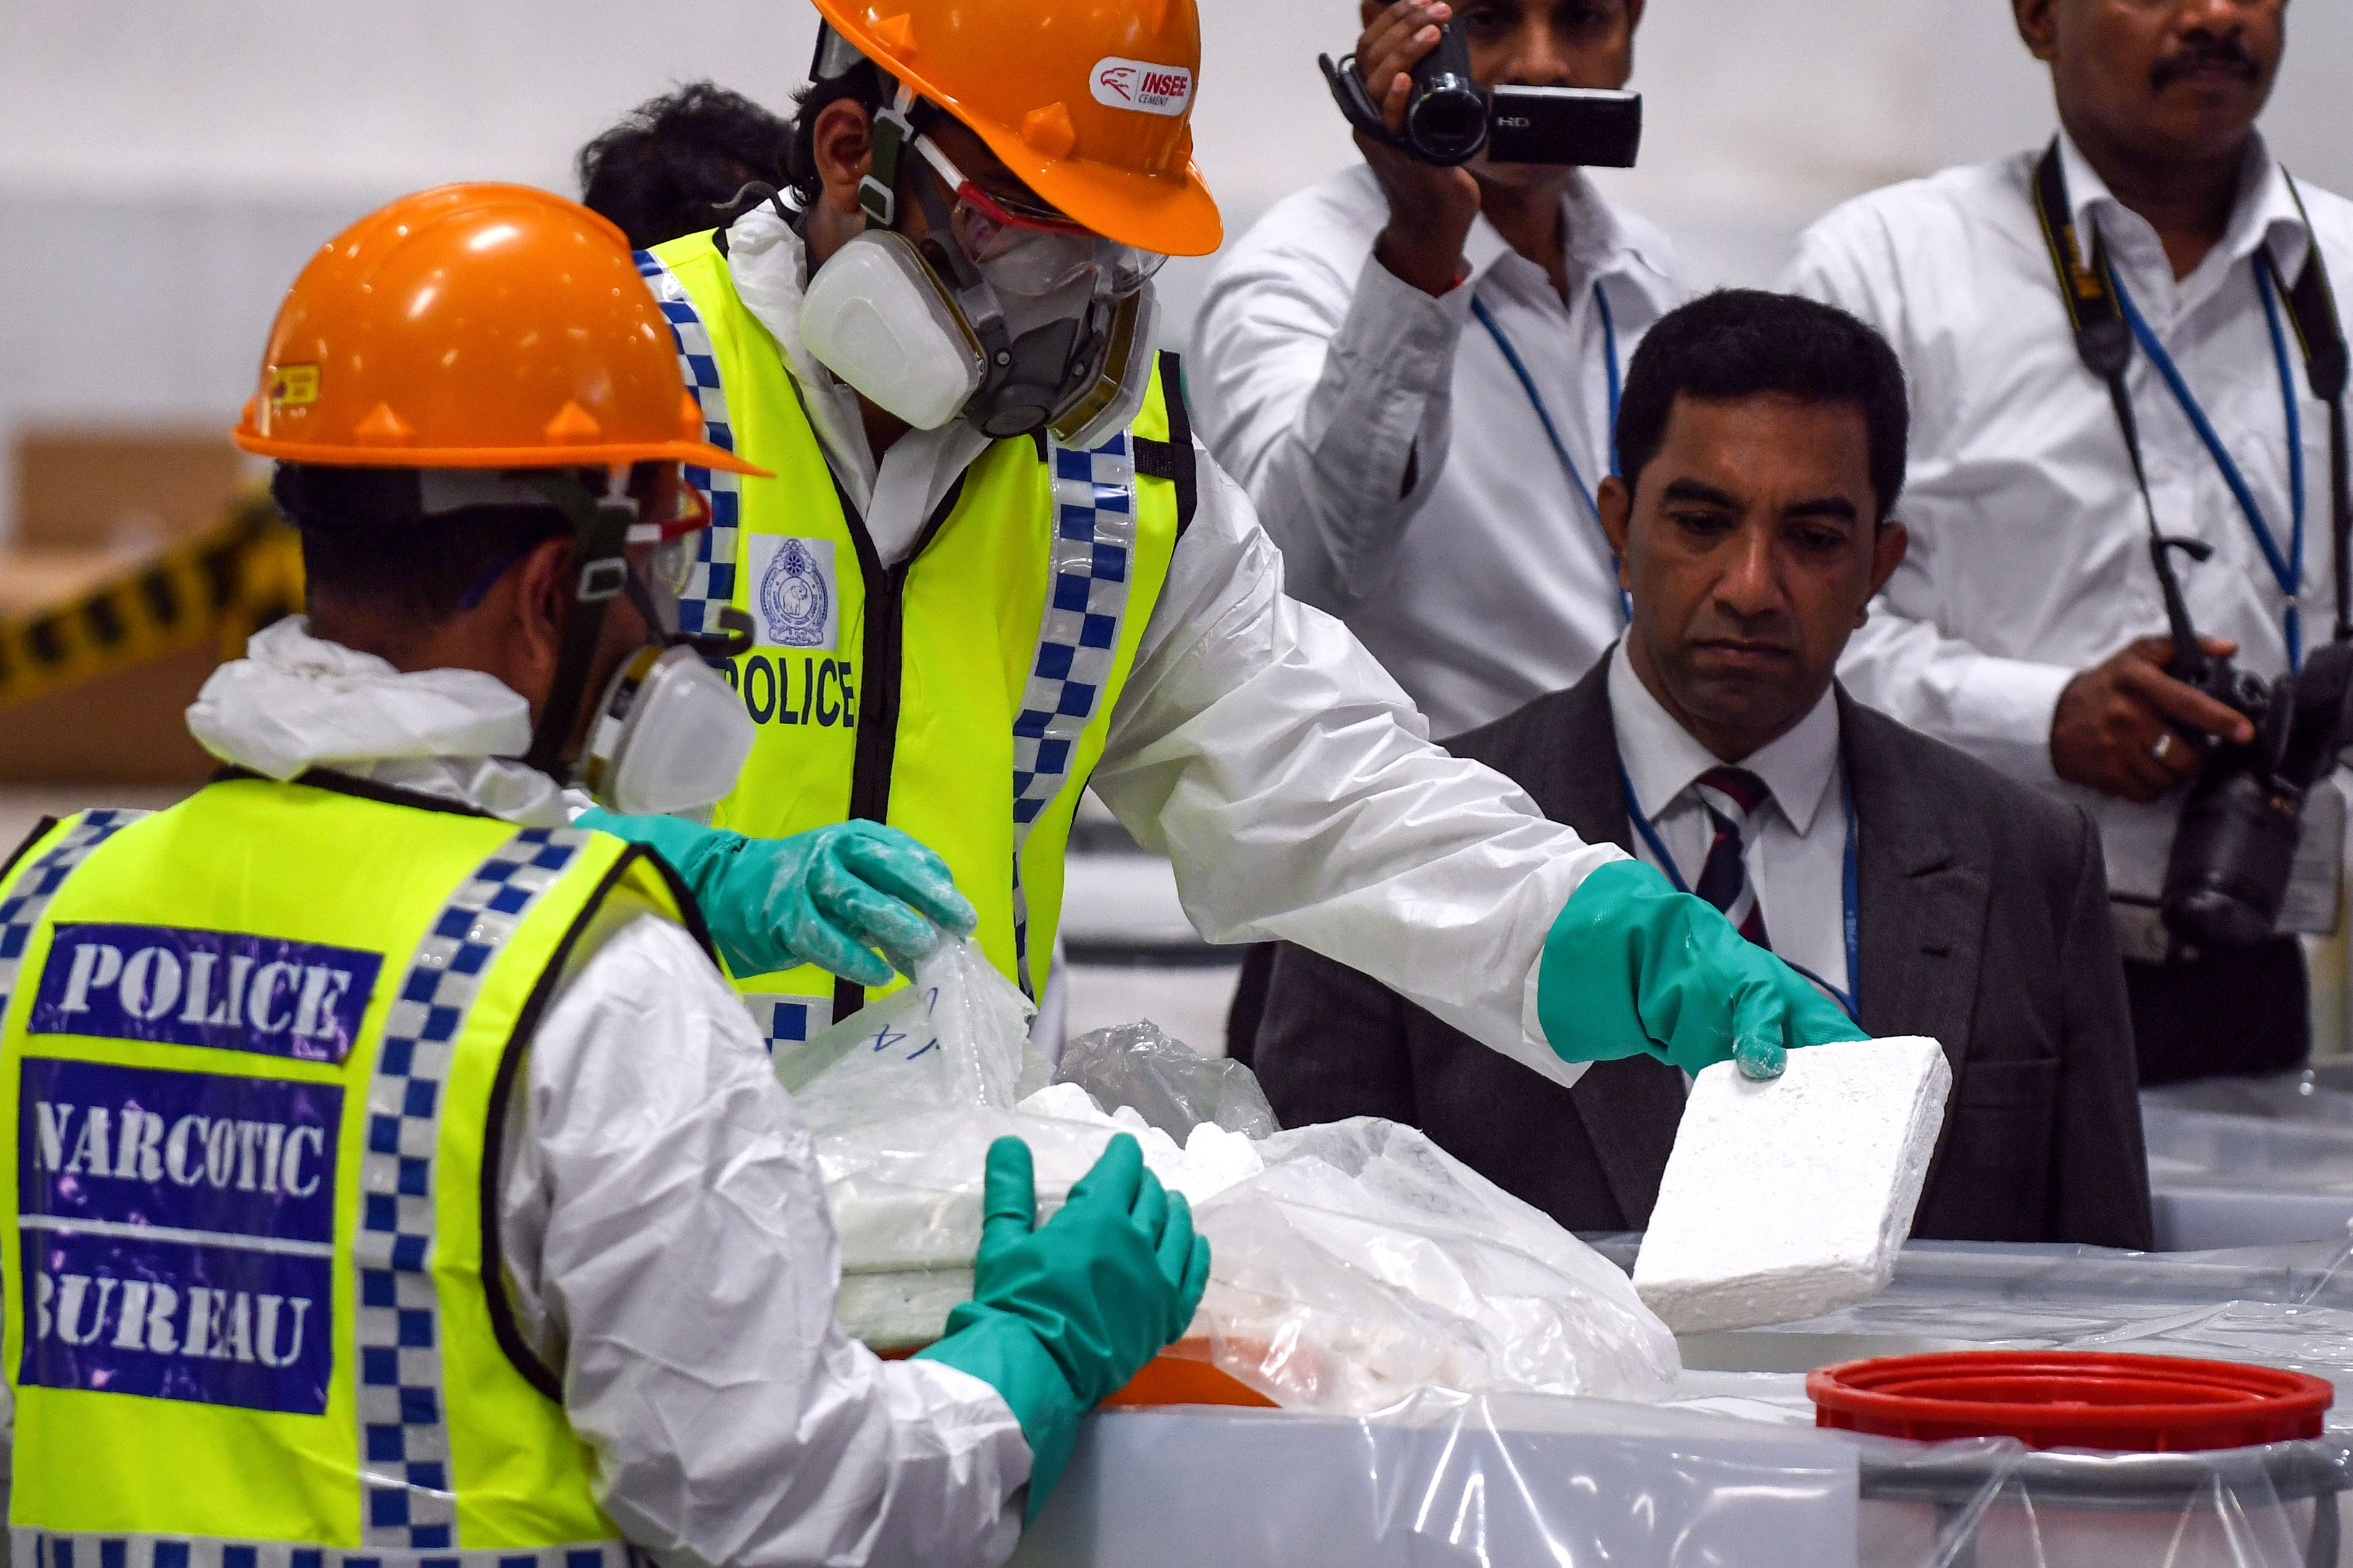 Sri Lankan police personnel prepare seized cocaine to be destroyed under judicial supervision at a suburb of Colombo on April 1, 2019. (LAKRUWAN WANNIARACHCHI/AFP/Getty Images)